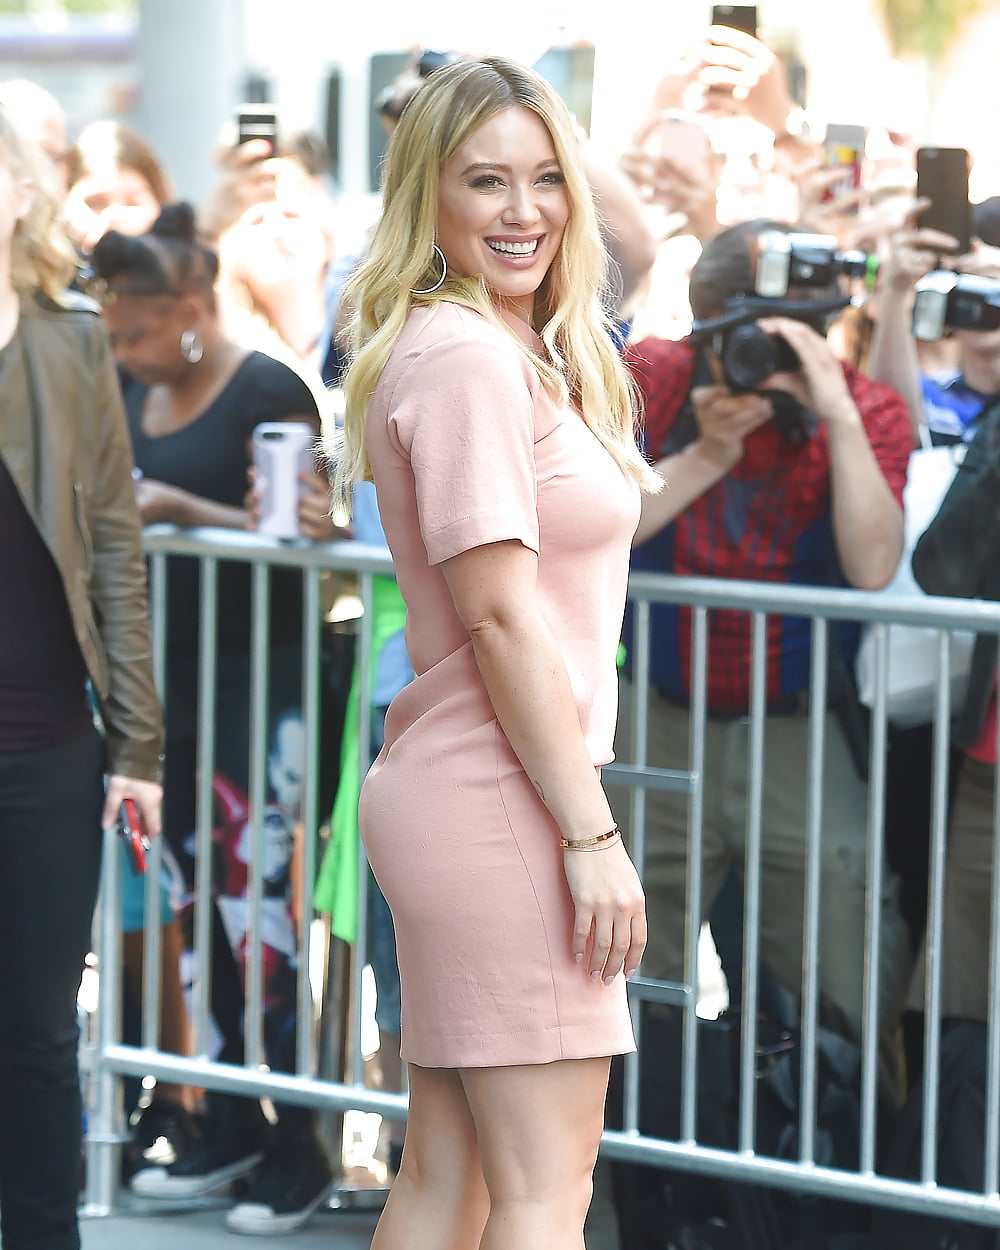 Hilary duff's hot pics